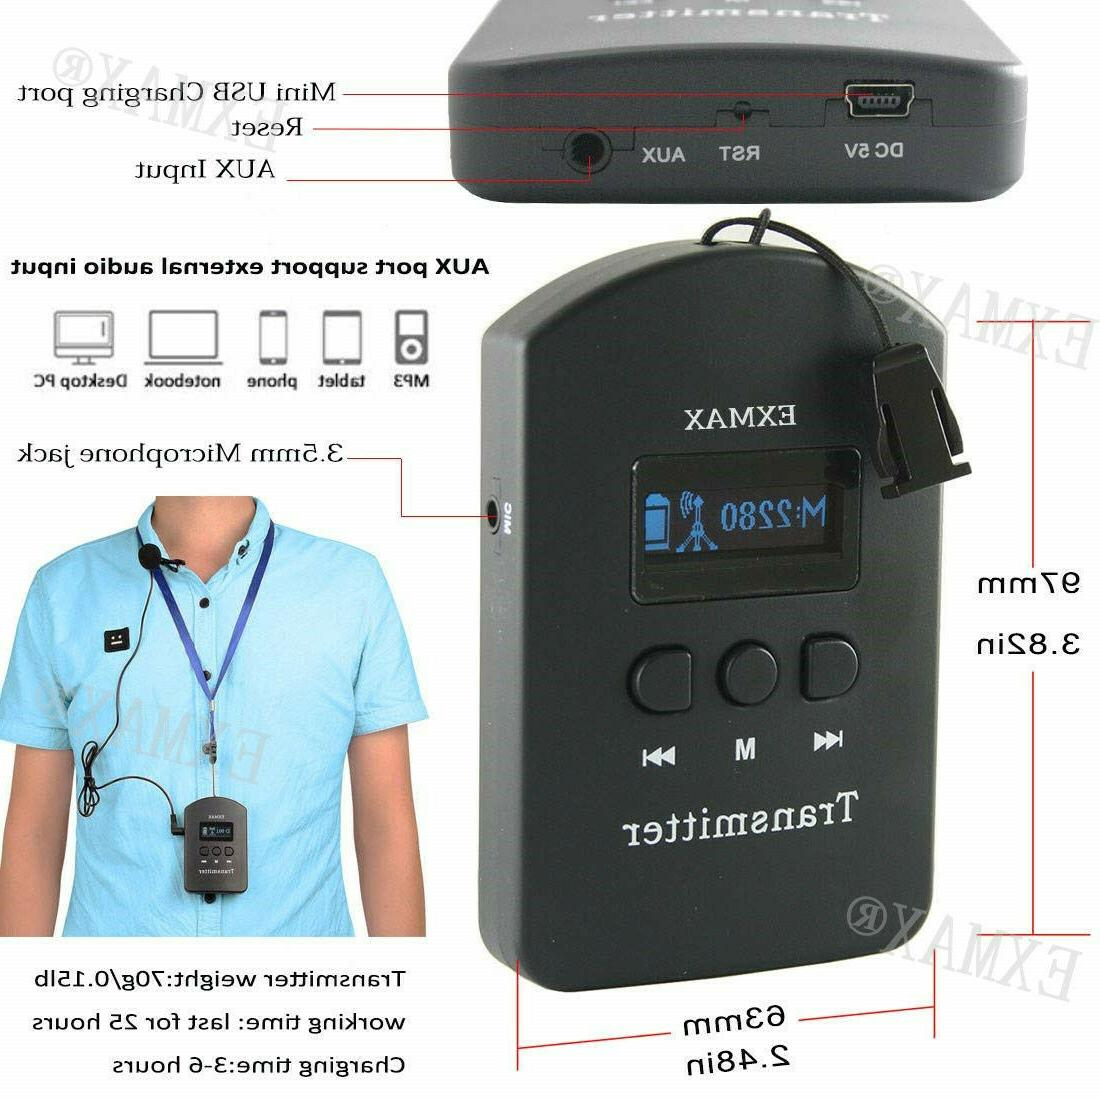 EXMAX 2.4G Wireless For 2 Meeting